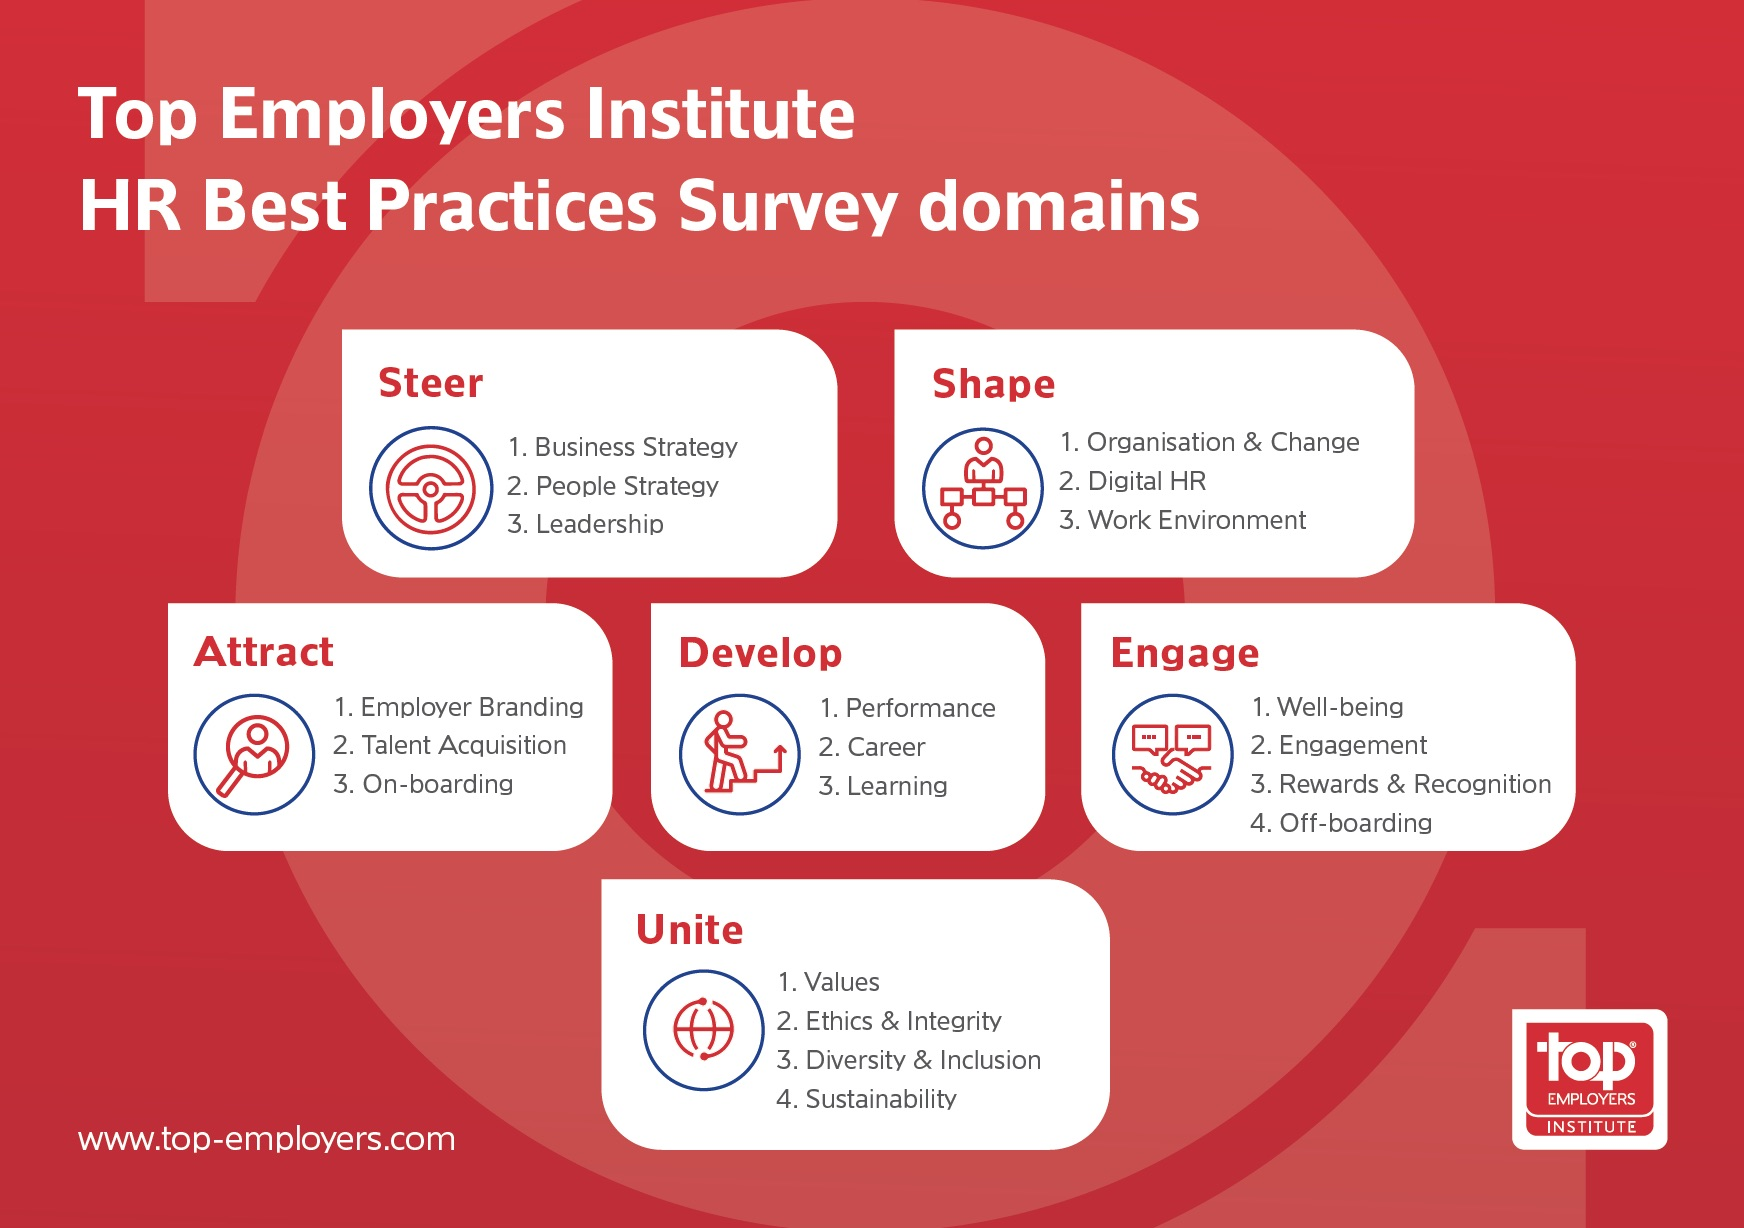 Top Employers Institute Proudly Presents the Global Top Employers 2021 1